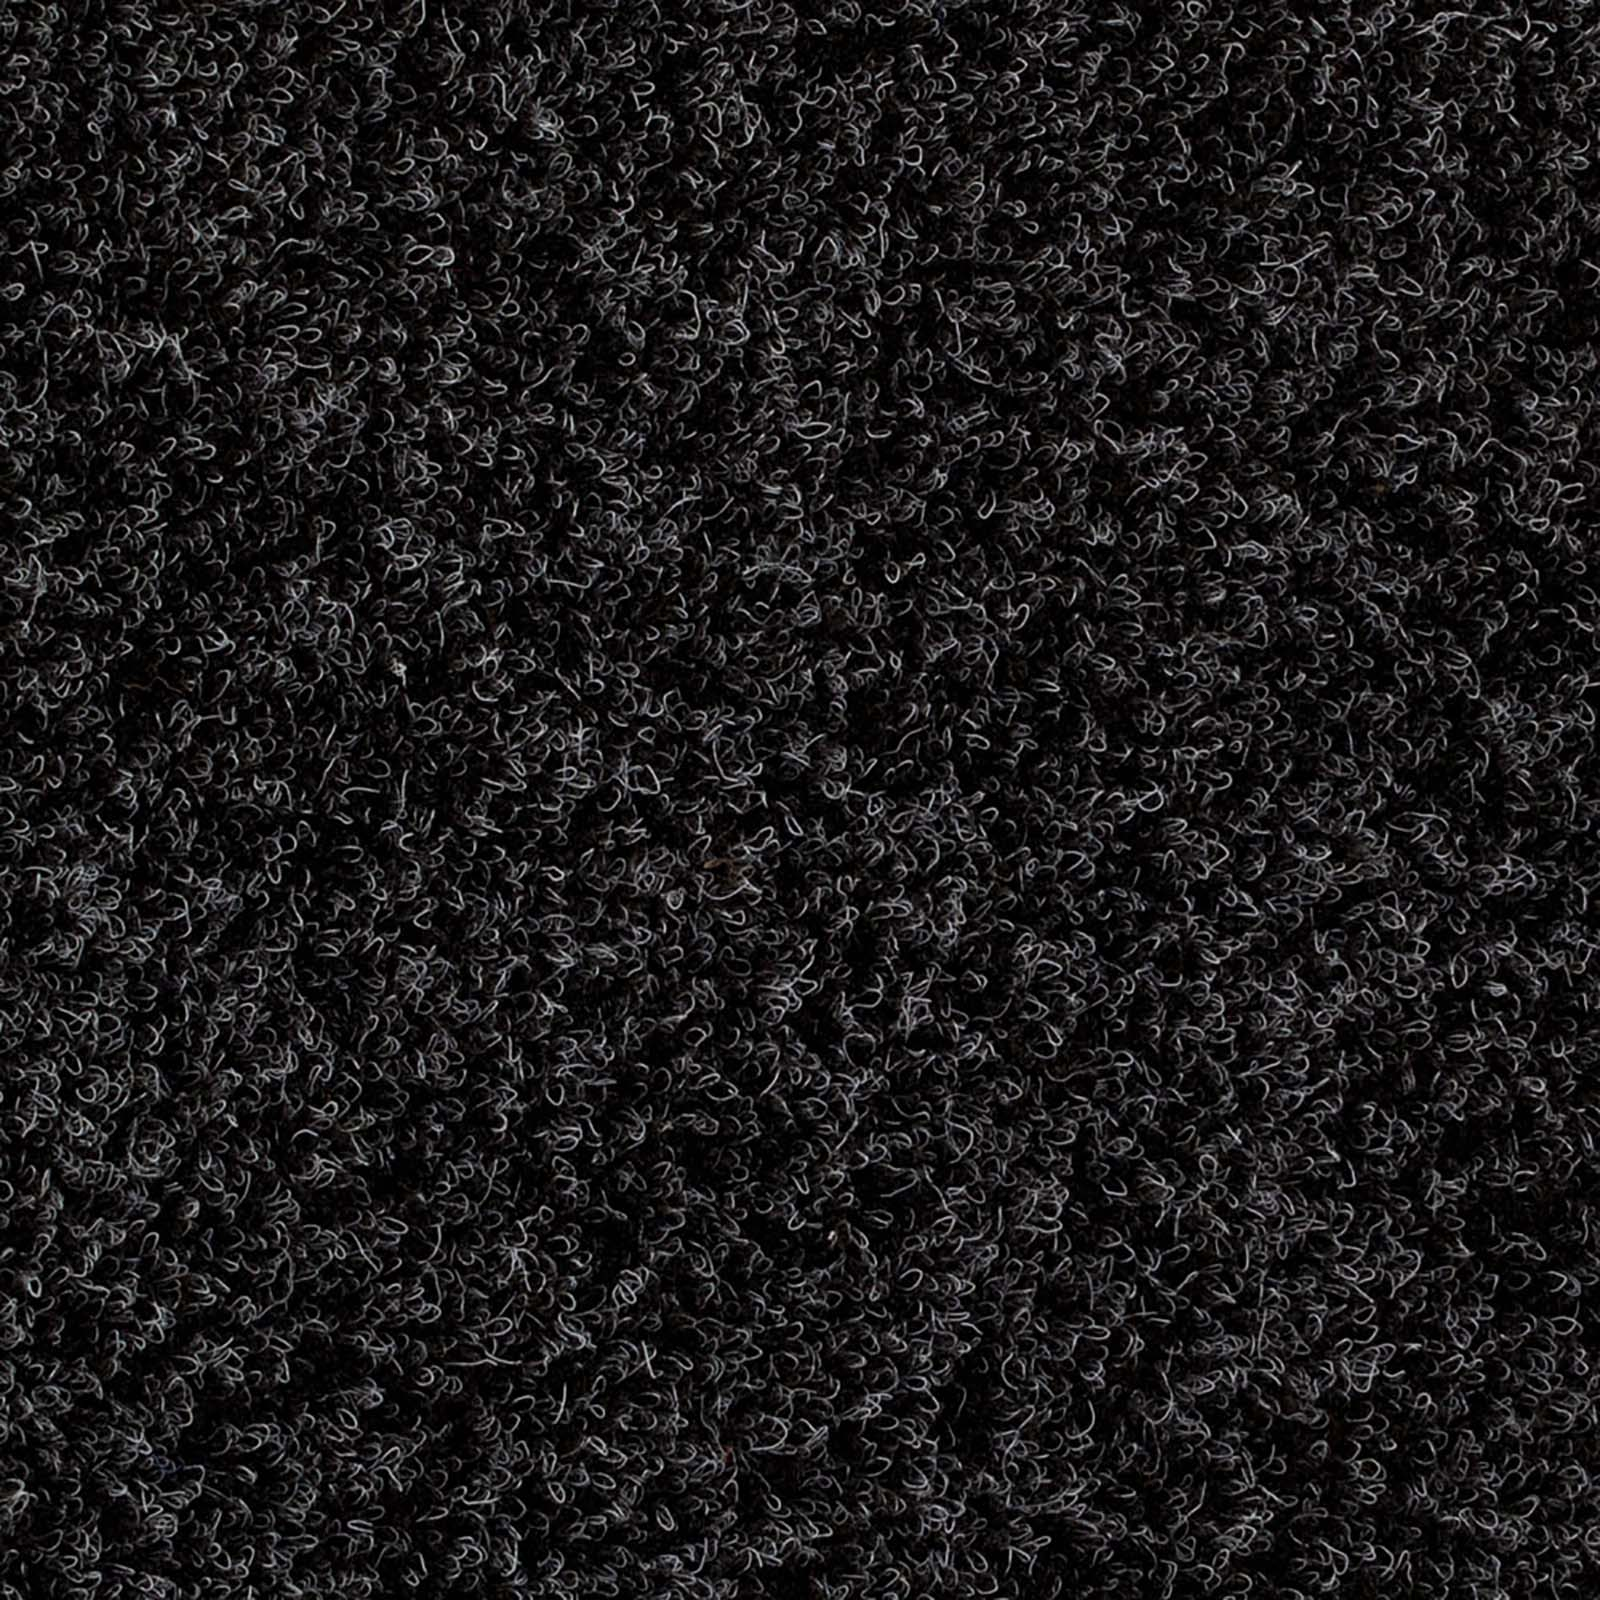 Anthracite Outdoor Carpet - Far